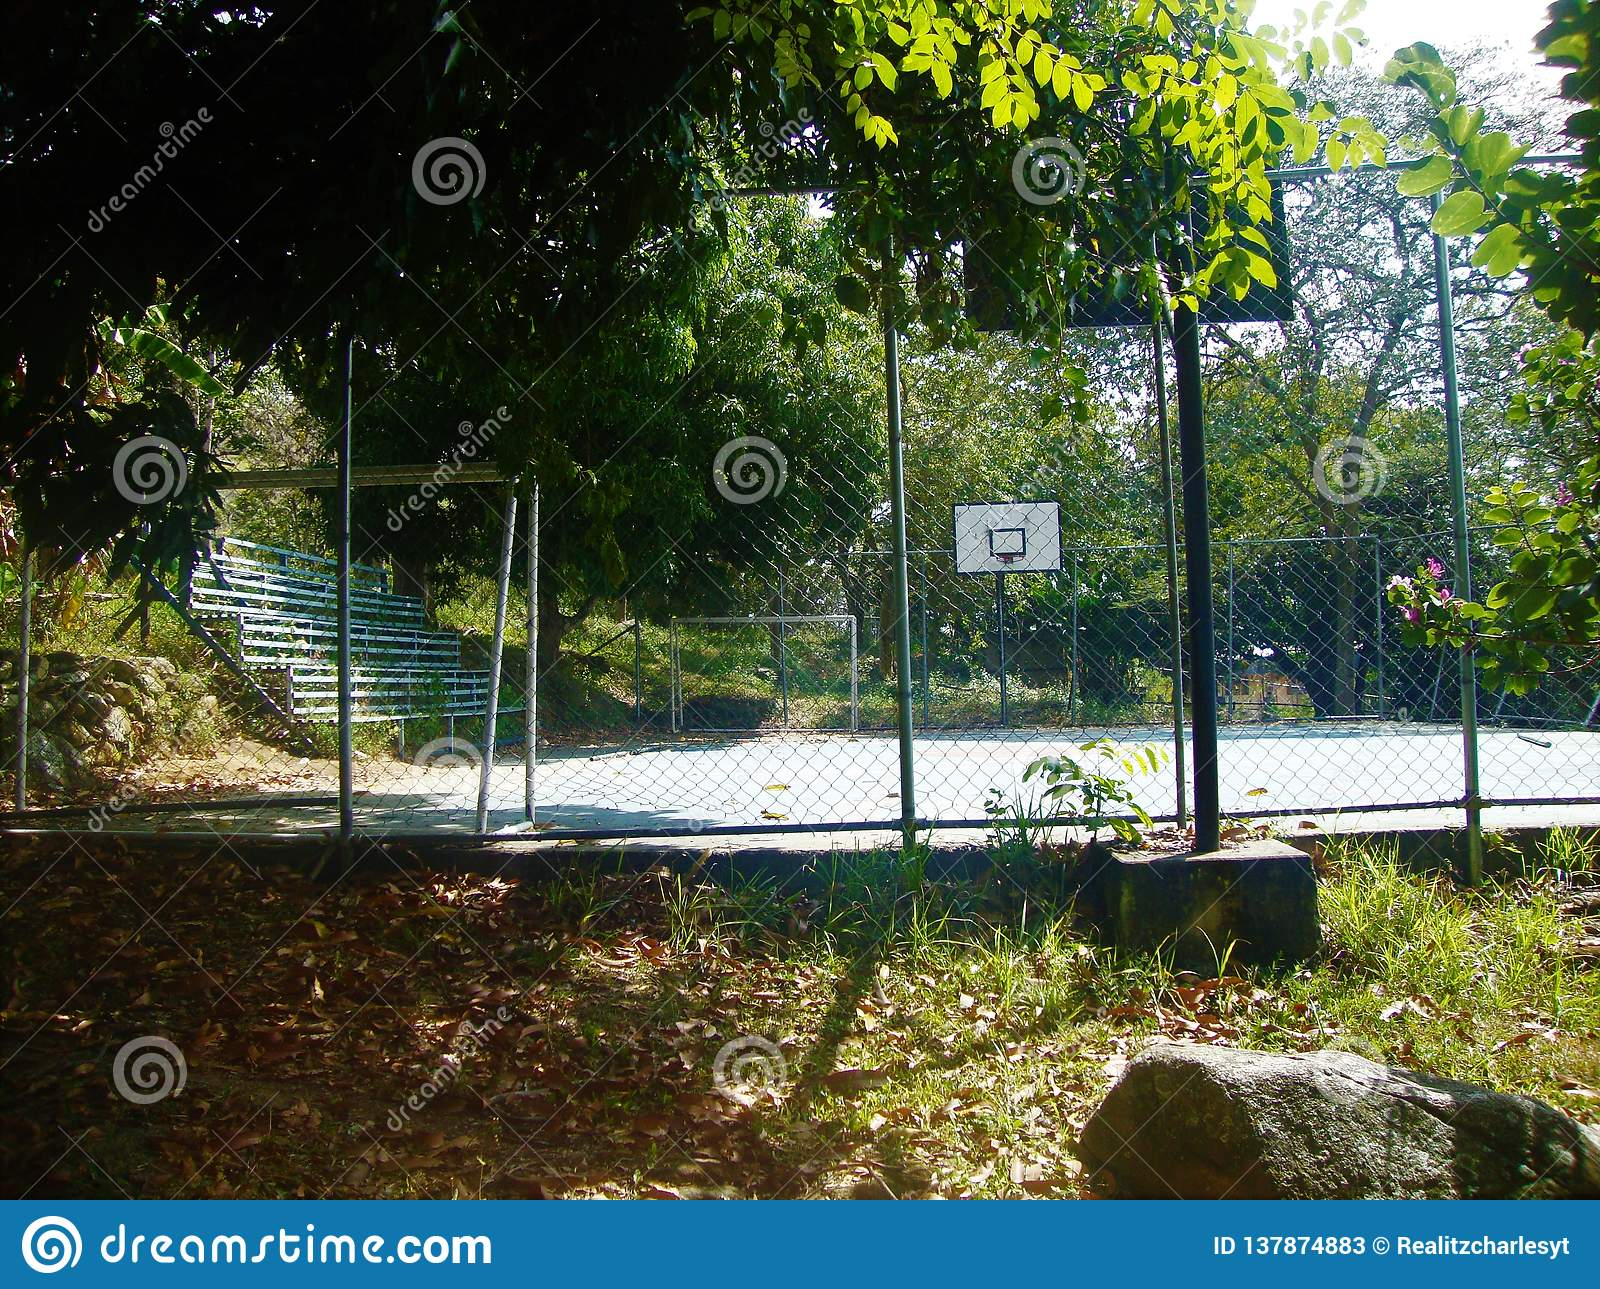 This day plays, to the abandoned court.